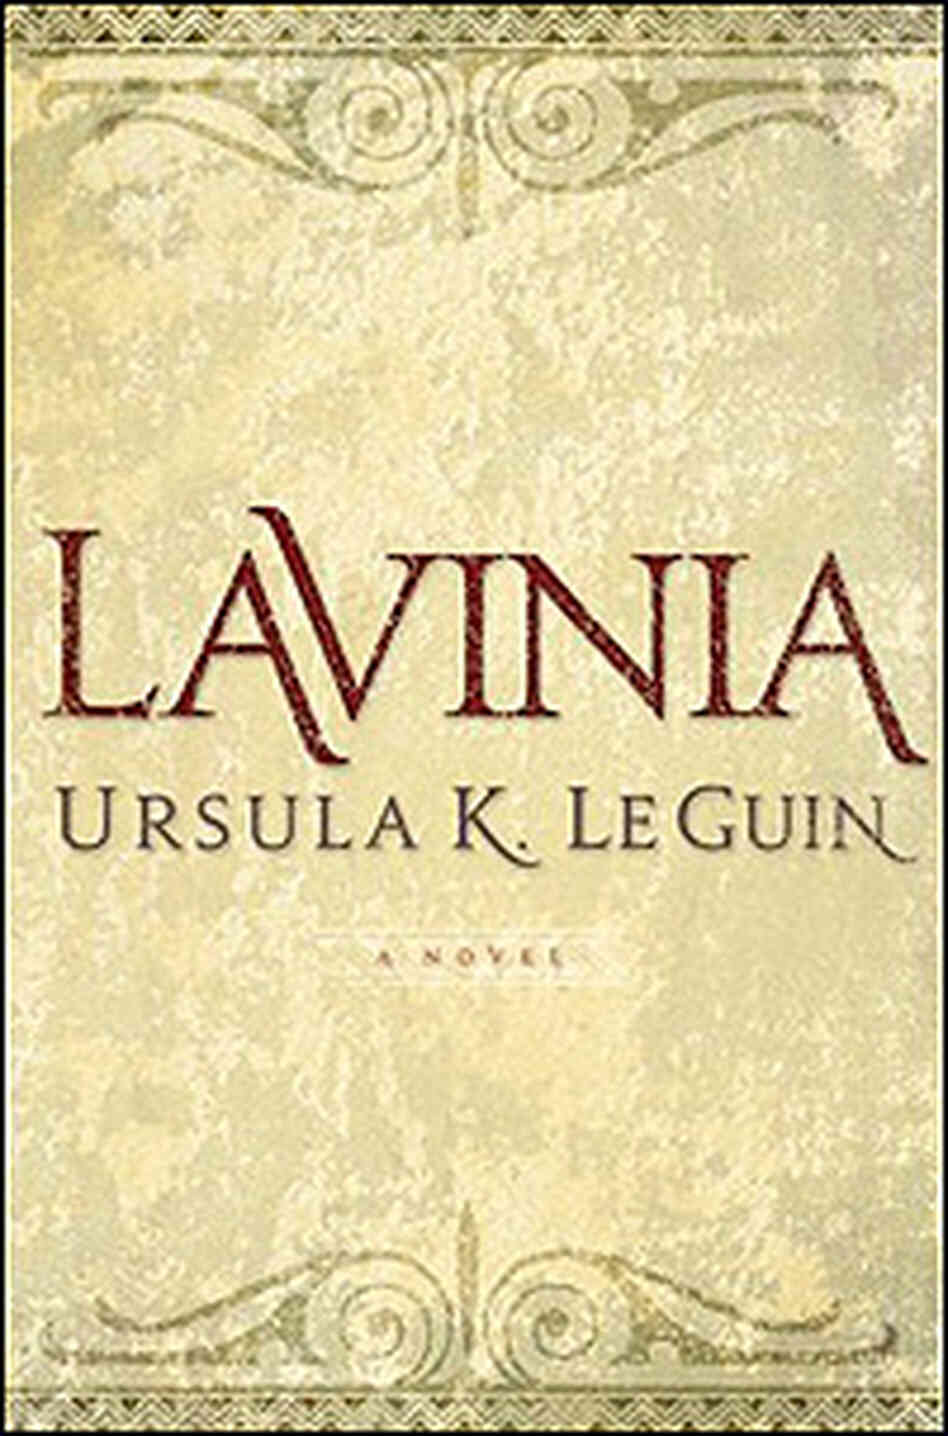 'Lavinia' book cover